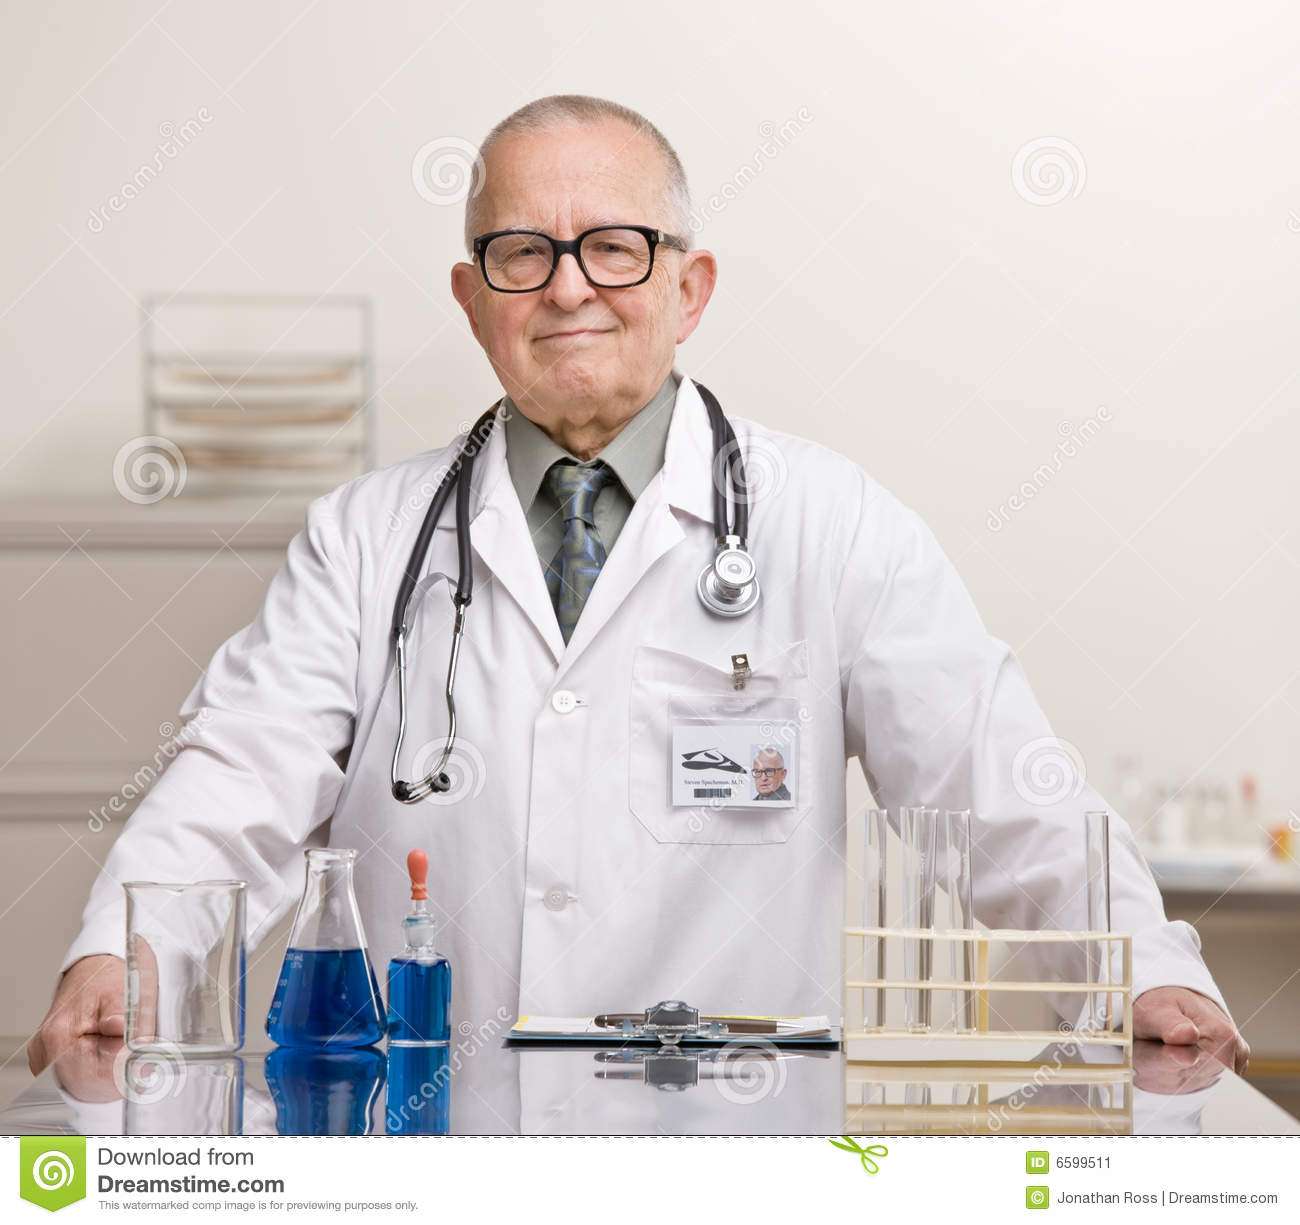 Doctor In Lab Coat And Stethoscope Stock Image - Image ...